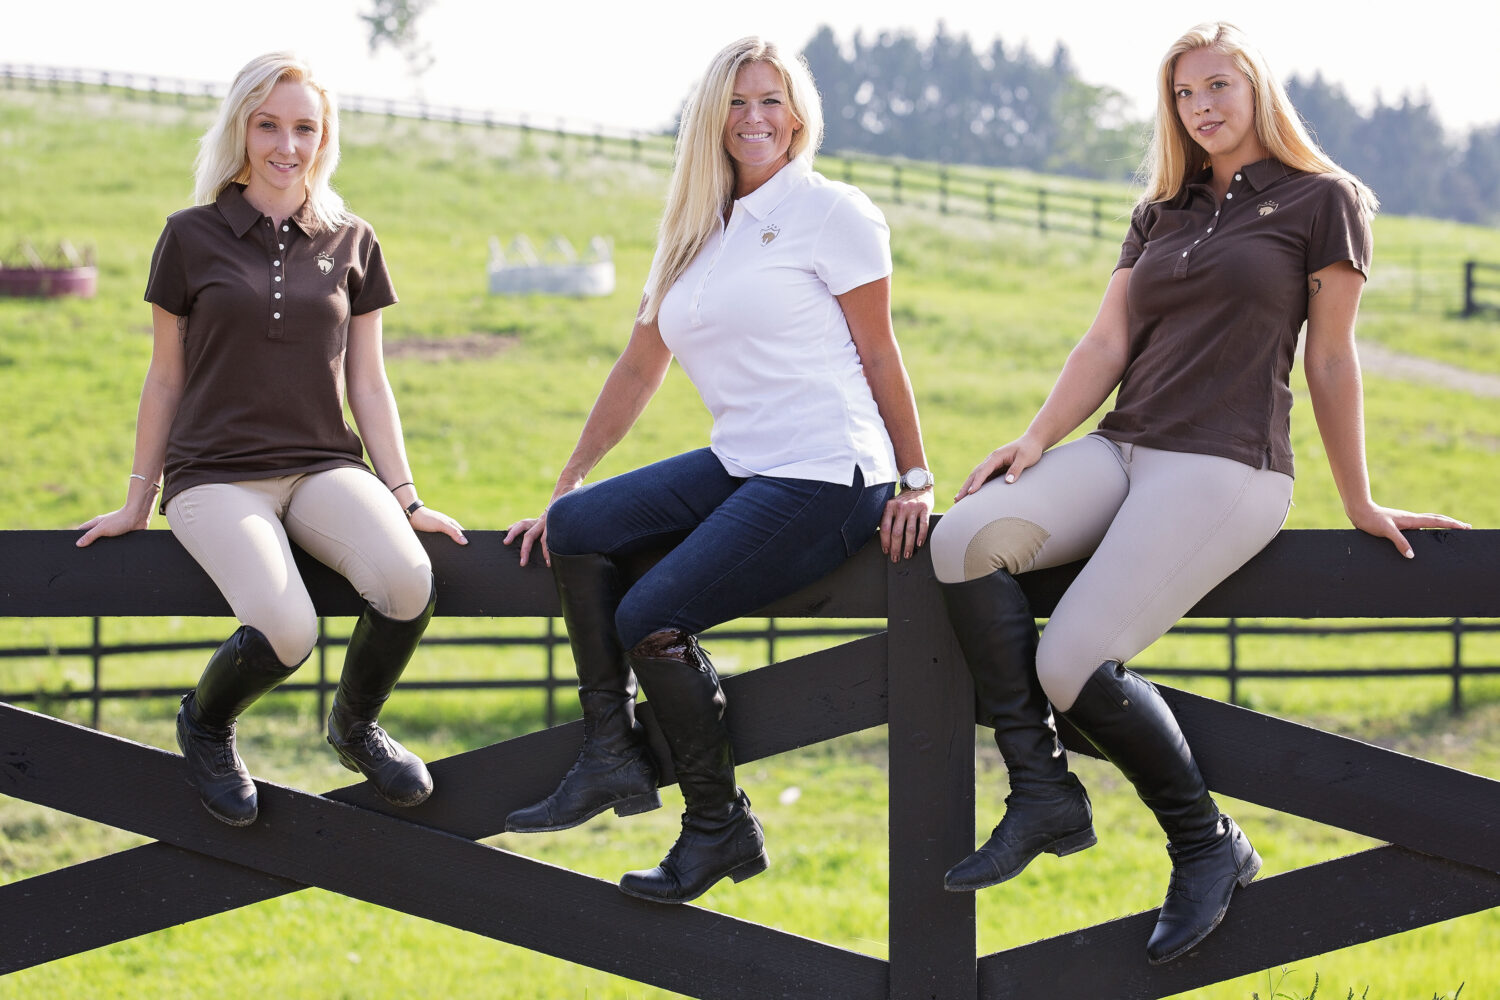 Short Sleeve Equestrian Riding Tops